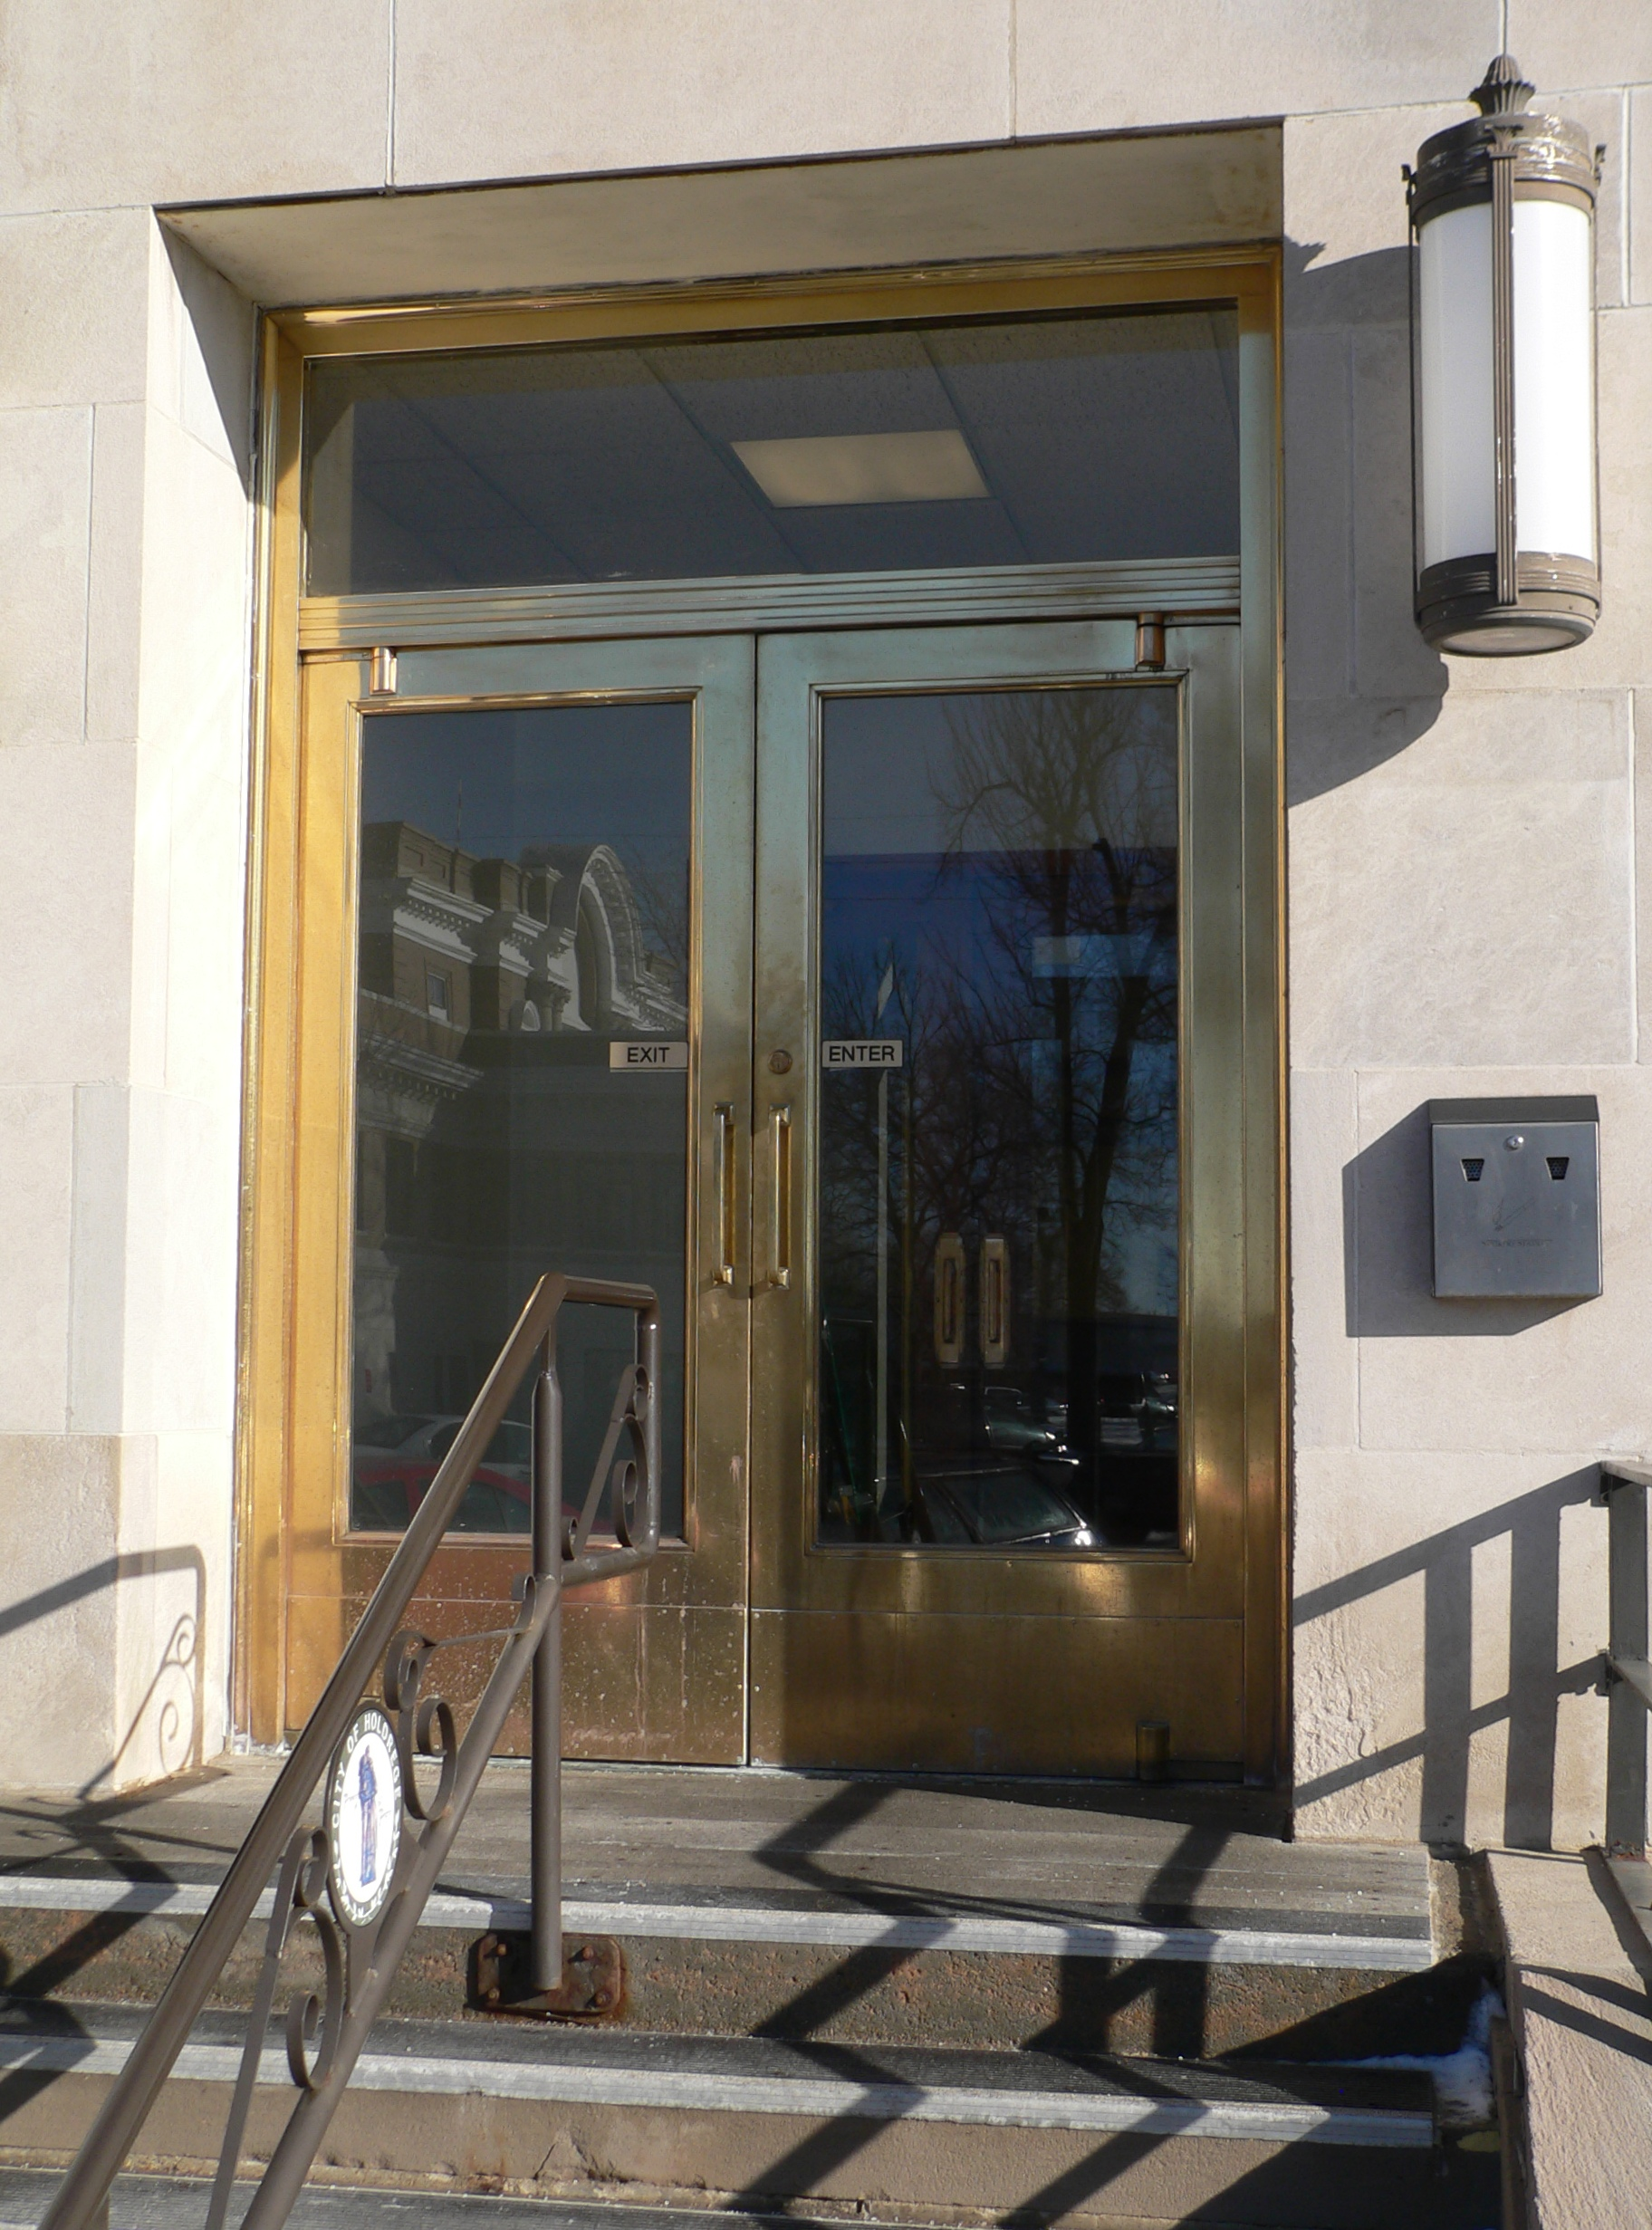 office entrance doors. File:Holdrege, Nebraska City Office W Entrance Doors.JPG Doors